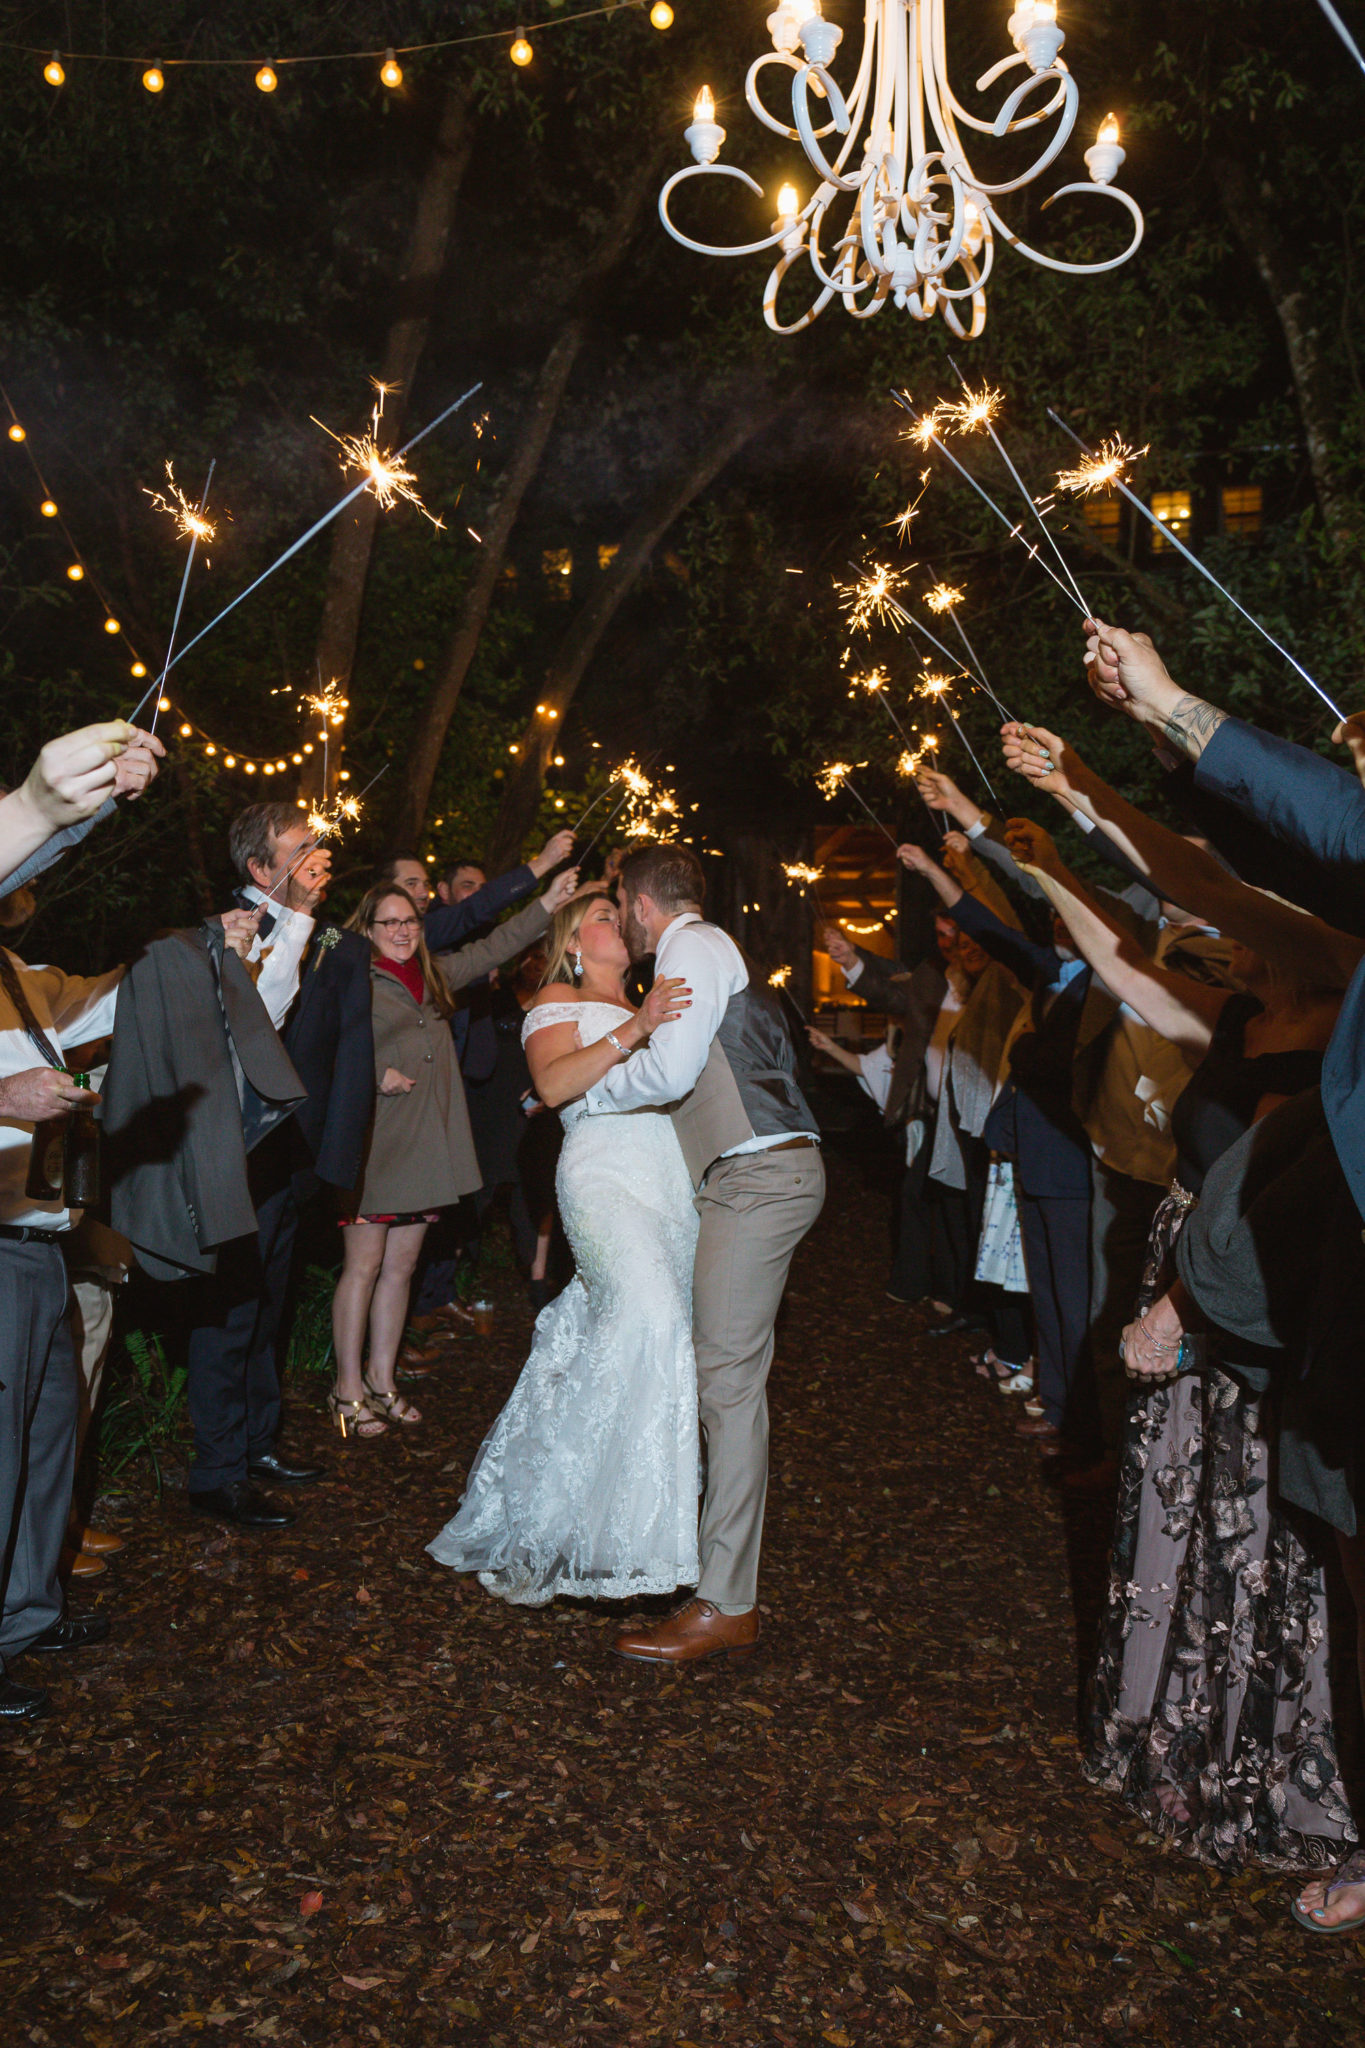 A super-fun sparkler exit for the couple at the end of the night.